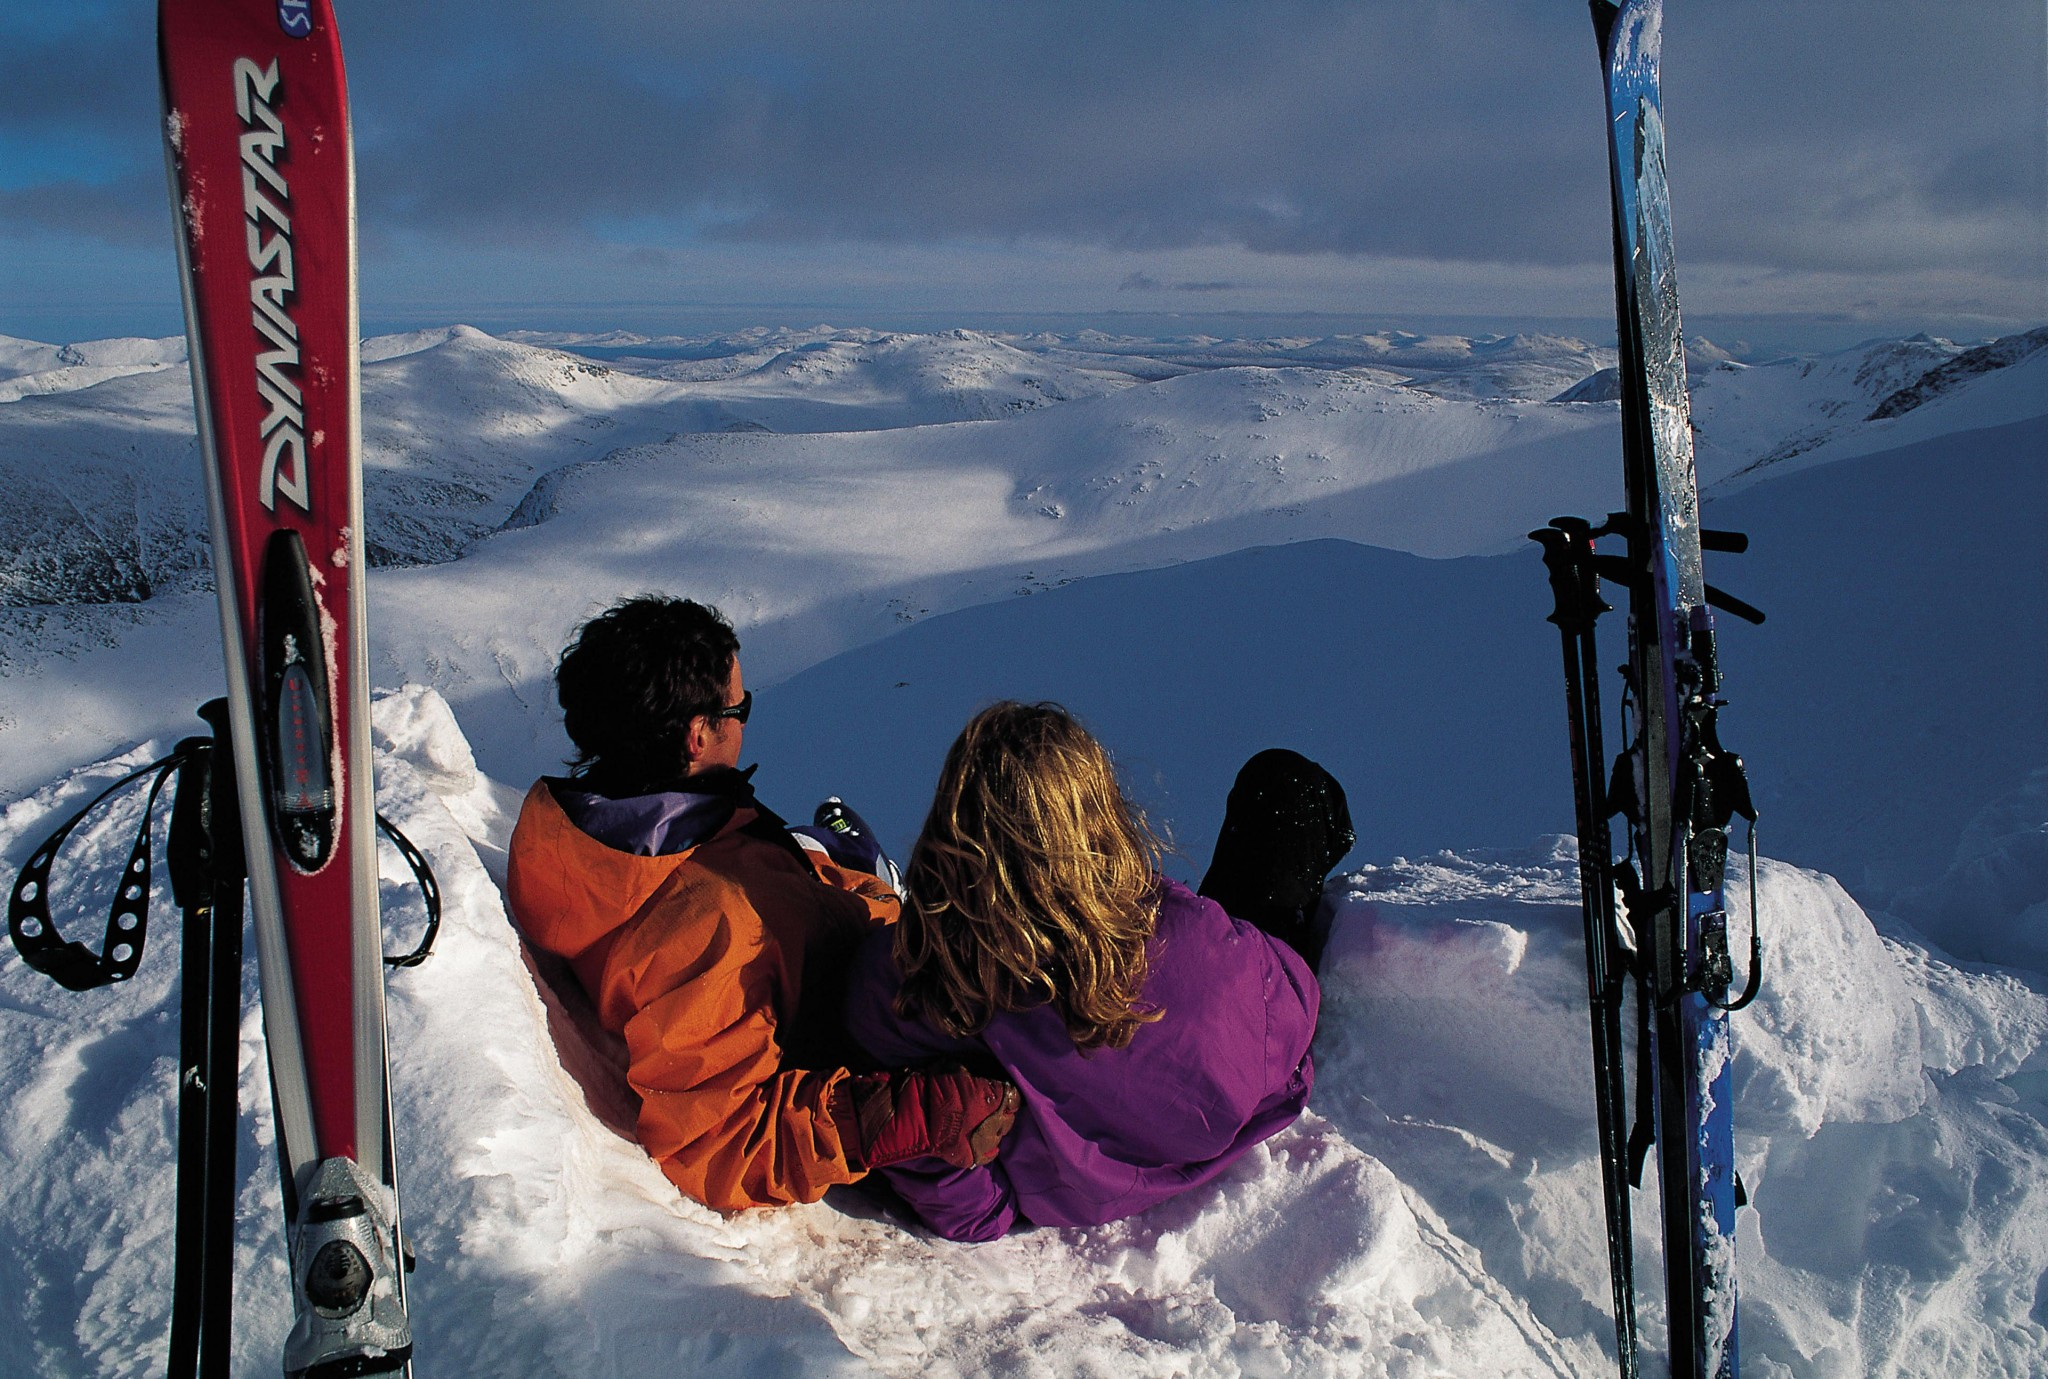 Free use stock 2 skiers snuggle up in snow hole at Nevis Range Credit VisitScotland, ScottishViewpoint